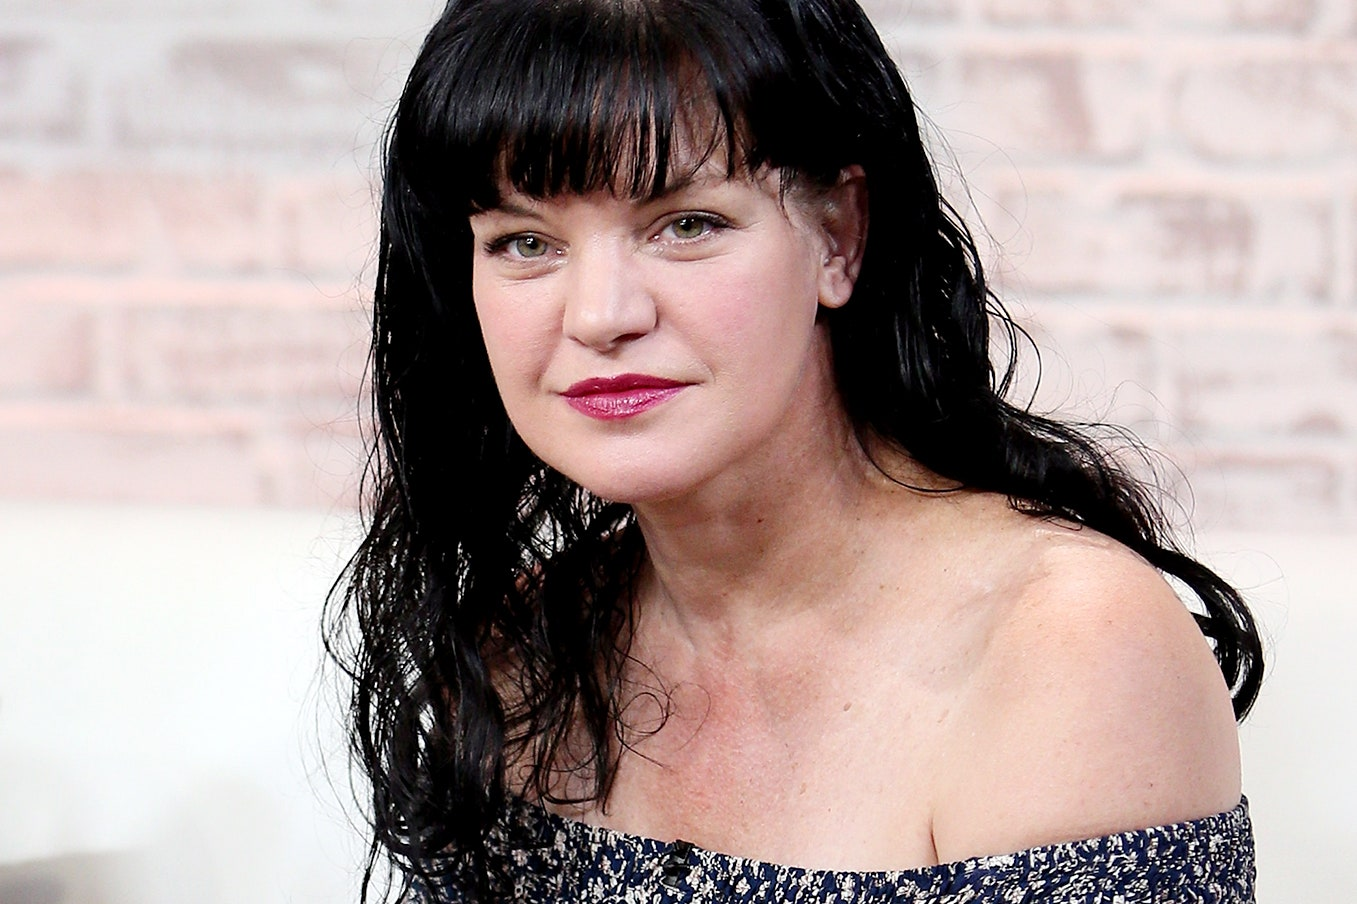 Pictures of abby from ncis